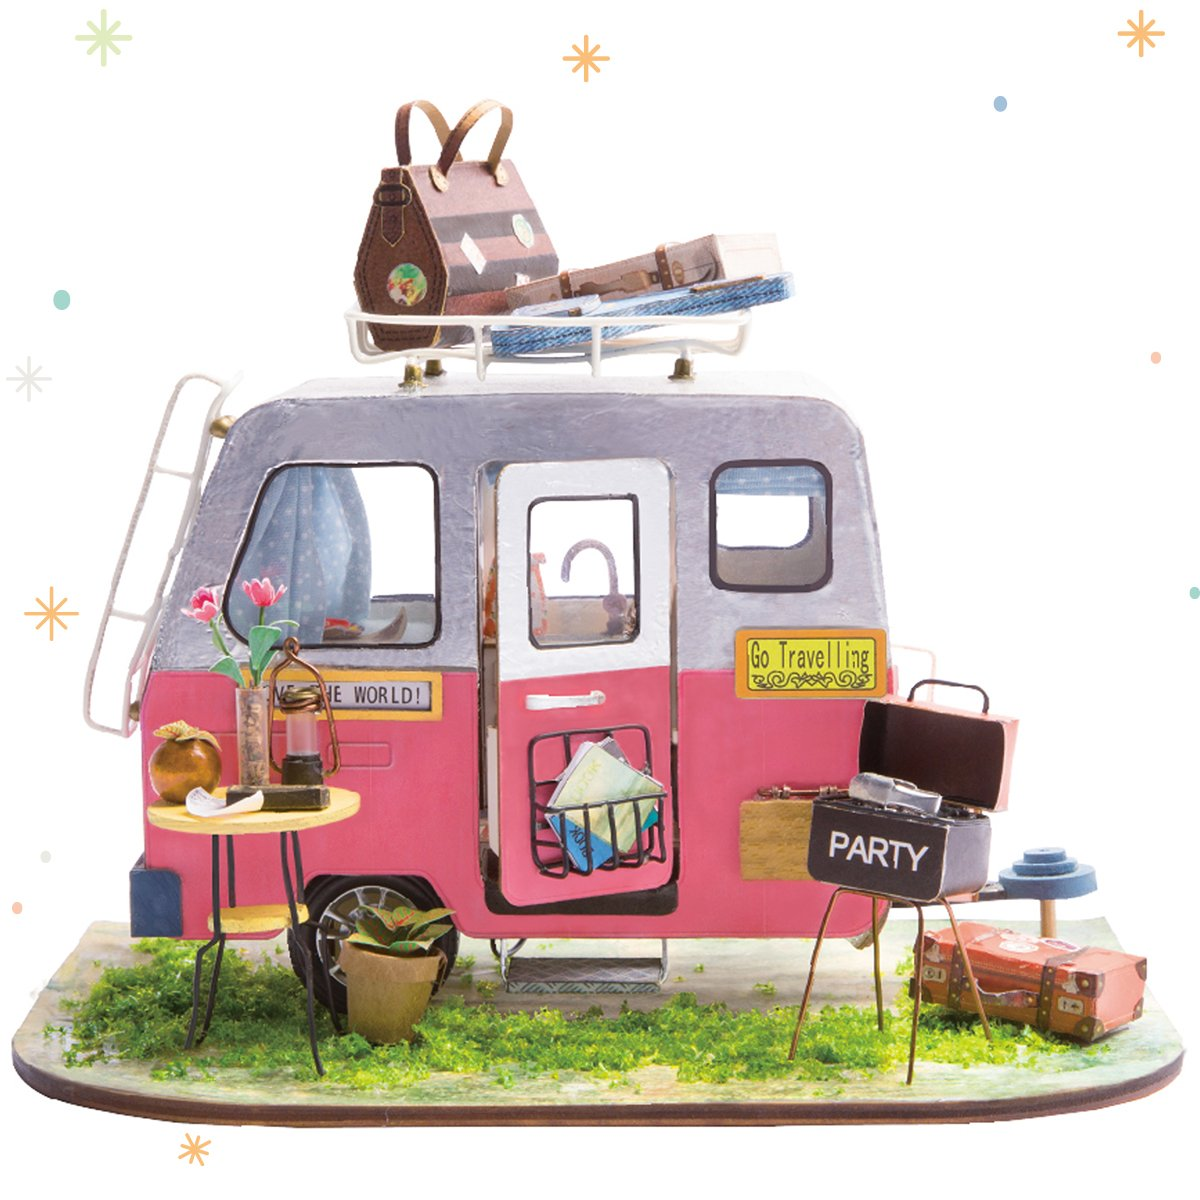 ROBOTIME Miniature Dollhouse Decorations with Accessories Wooden DIY House Projects Best Birthday Gifts for Adults & Children (Happy Camper)